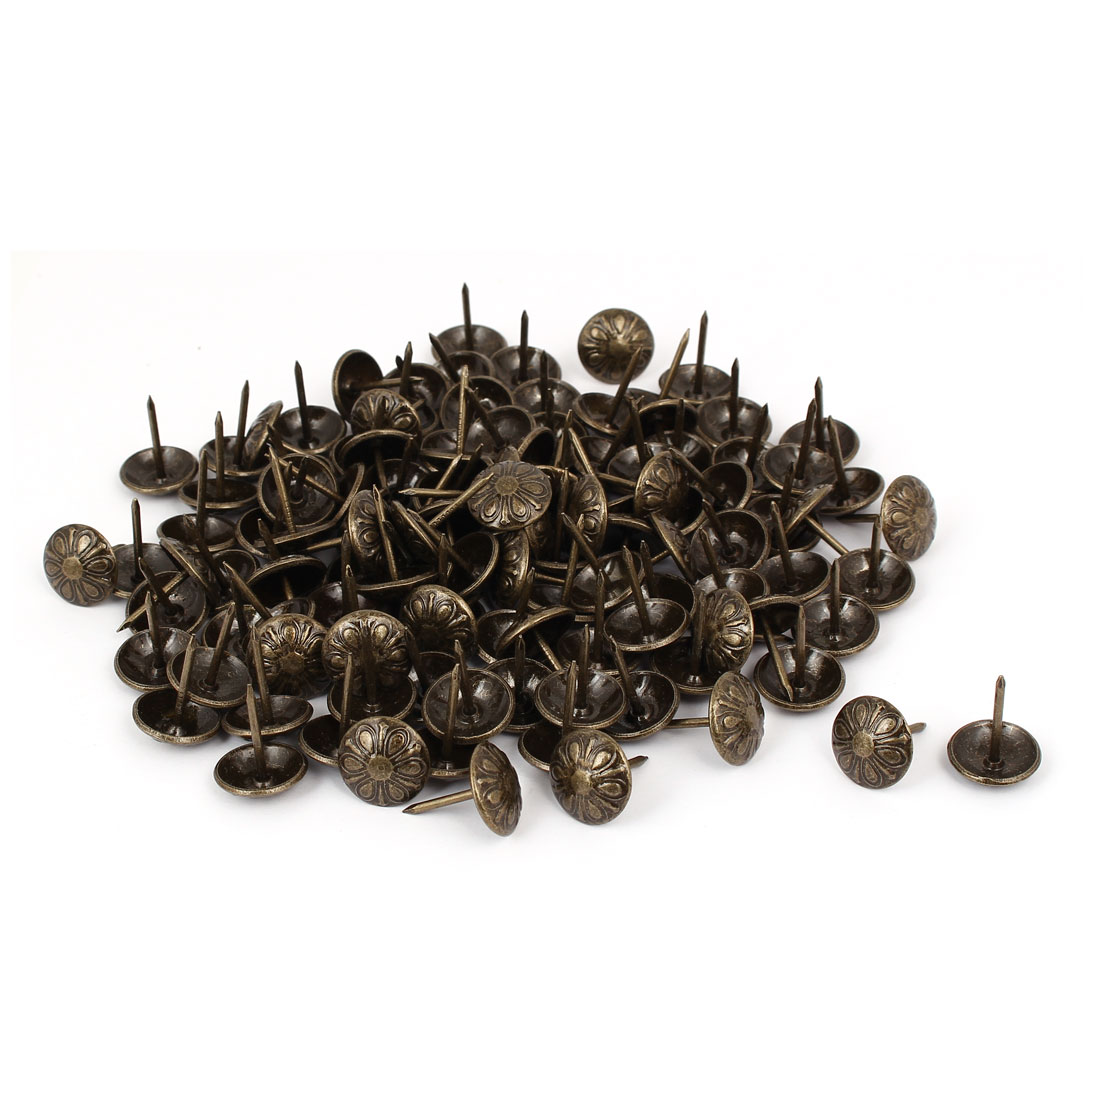 Household Metal Round Head Upholstery Tack Nail Bronze Tone 16mm Dia 120pcs